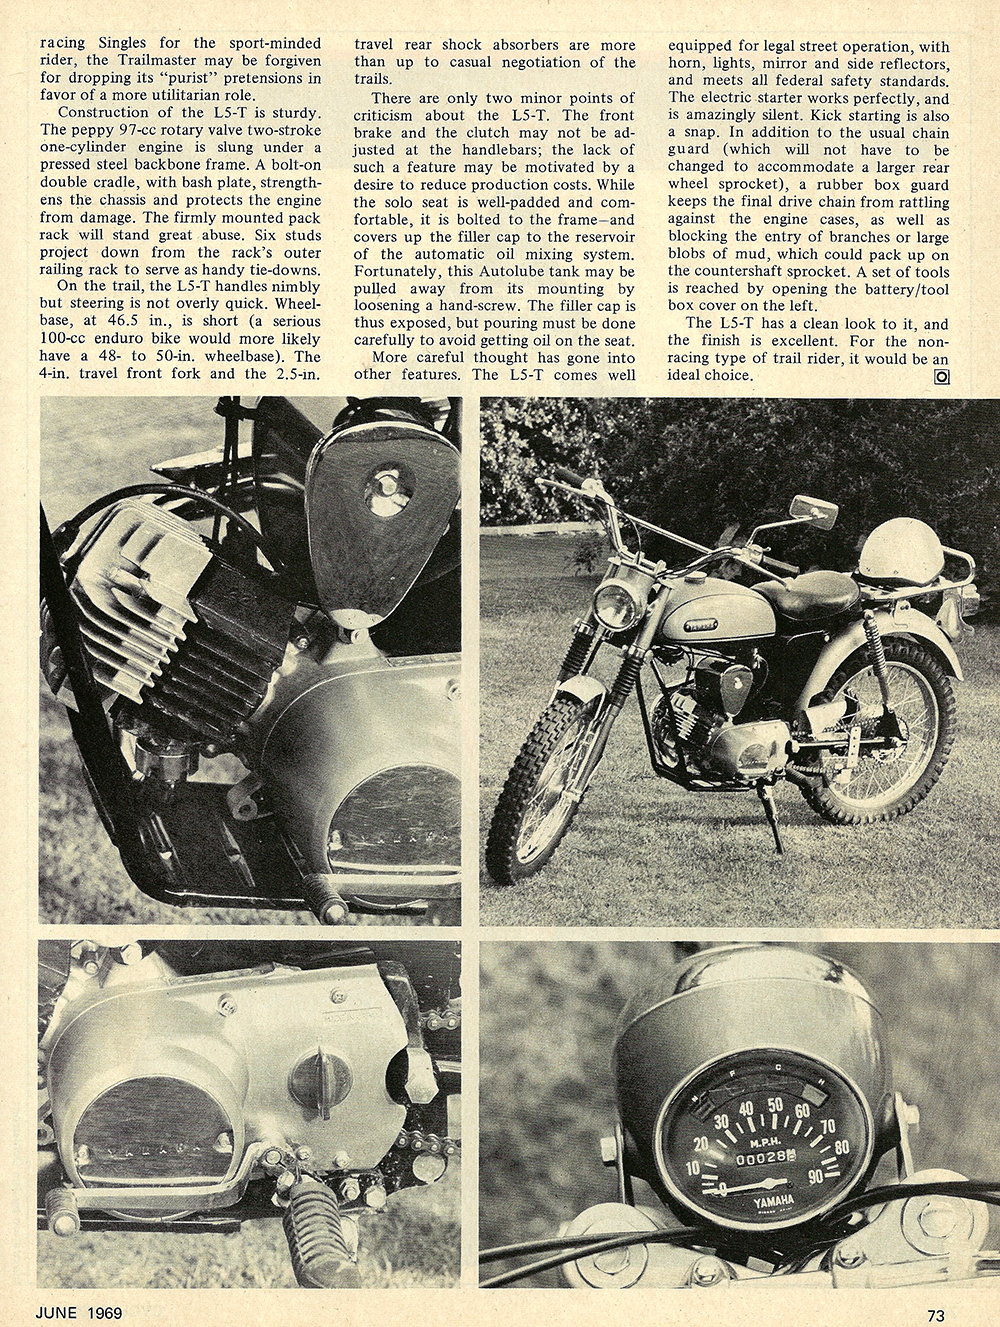 1969 Yamaha L5T Trailmaster 100 road test 02.jpg